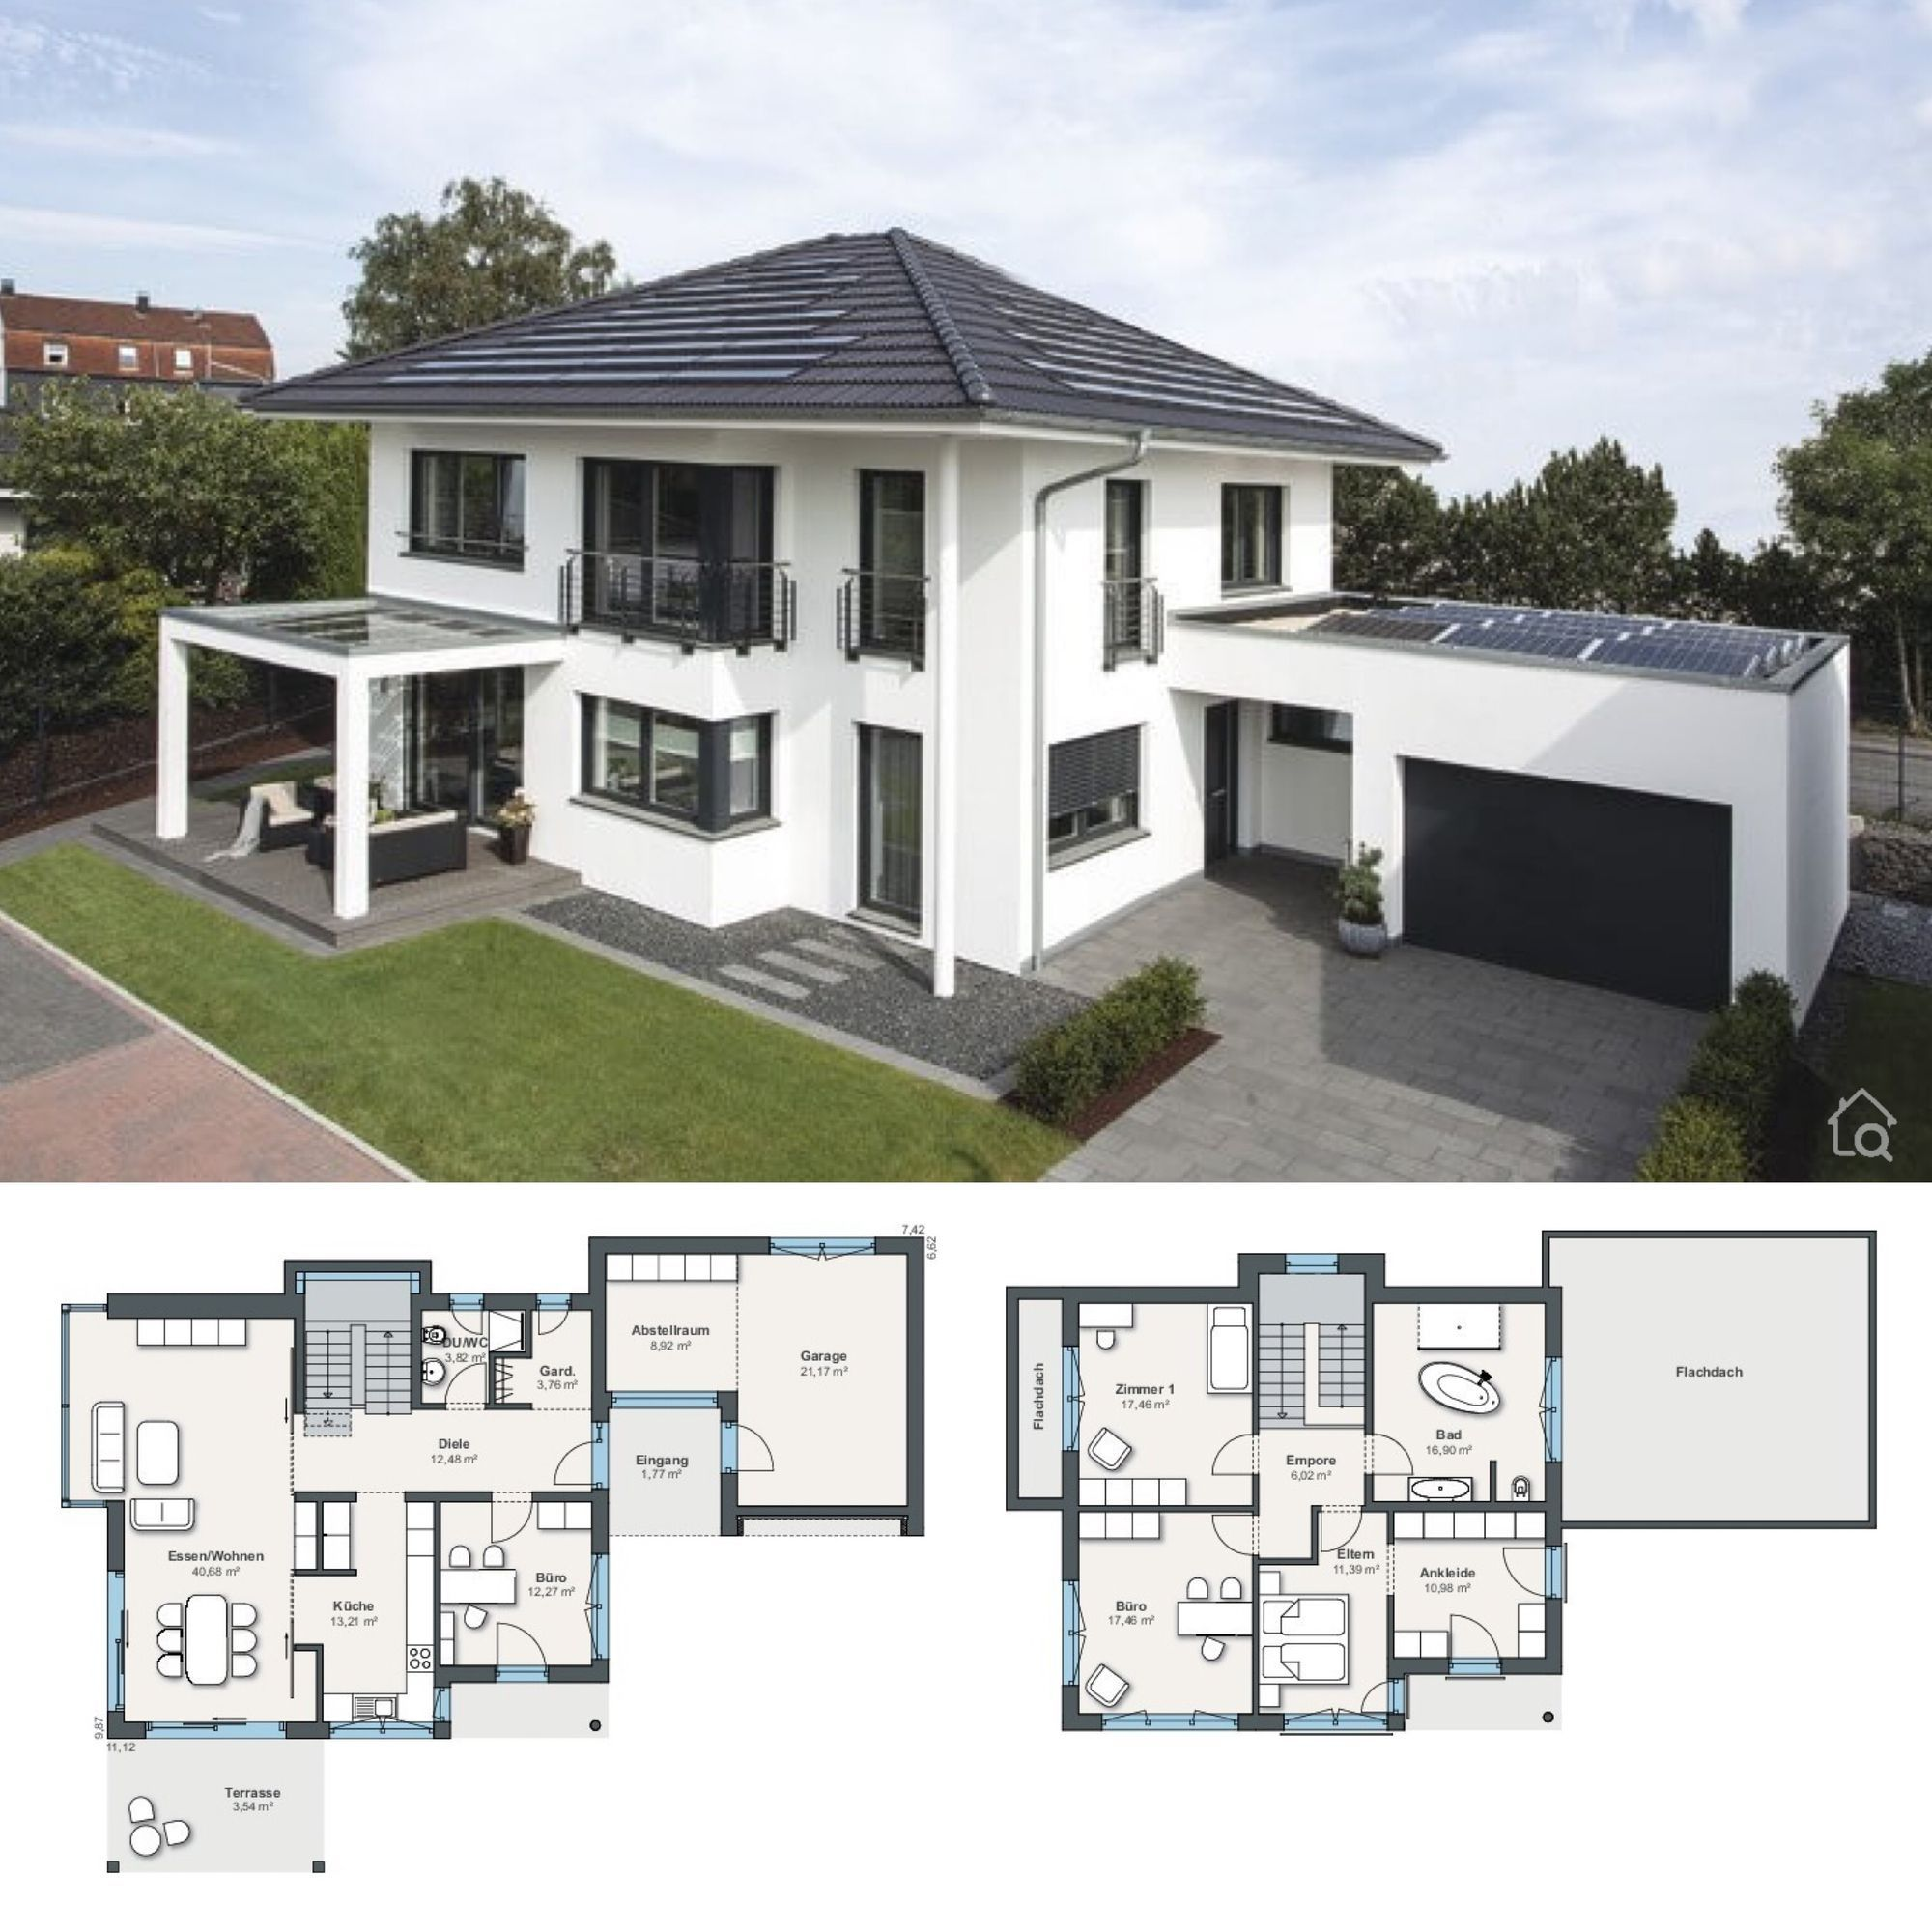 Two Floor House Plans With 4 Bedroom Garage Modern Contemporary European Styles Architectu In 2020 House Architecture Design Architecture House Architecture Design